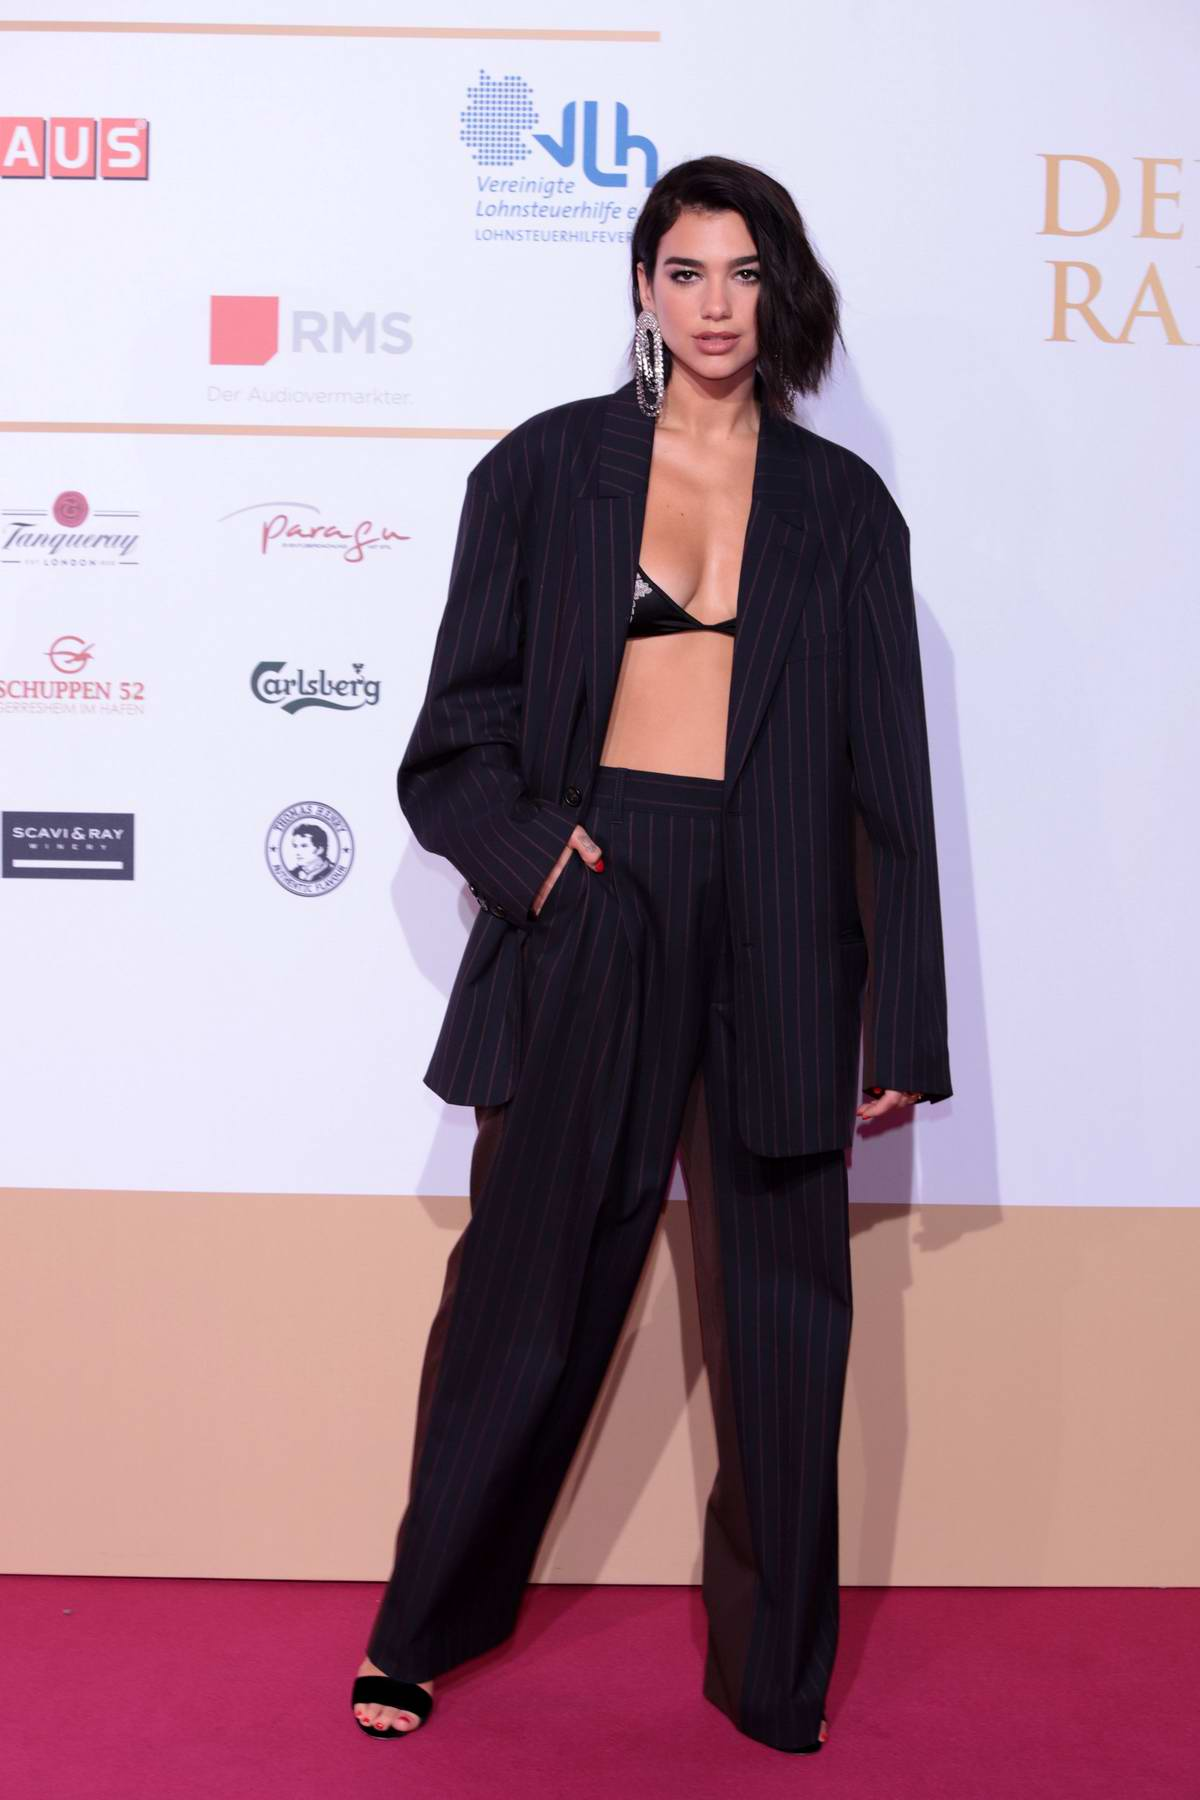 Dua Lipa attends Deutscher Radiopreis 2018 in Hamburg, Germany